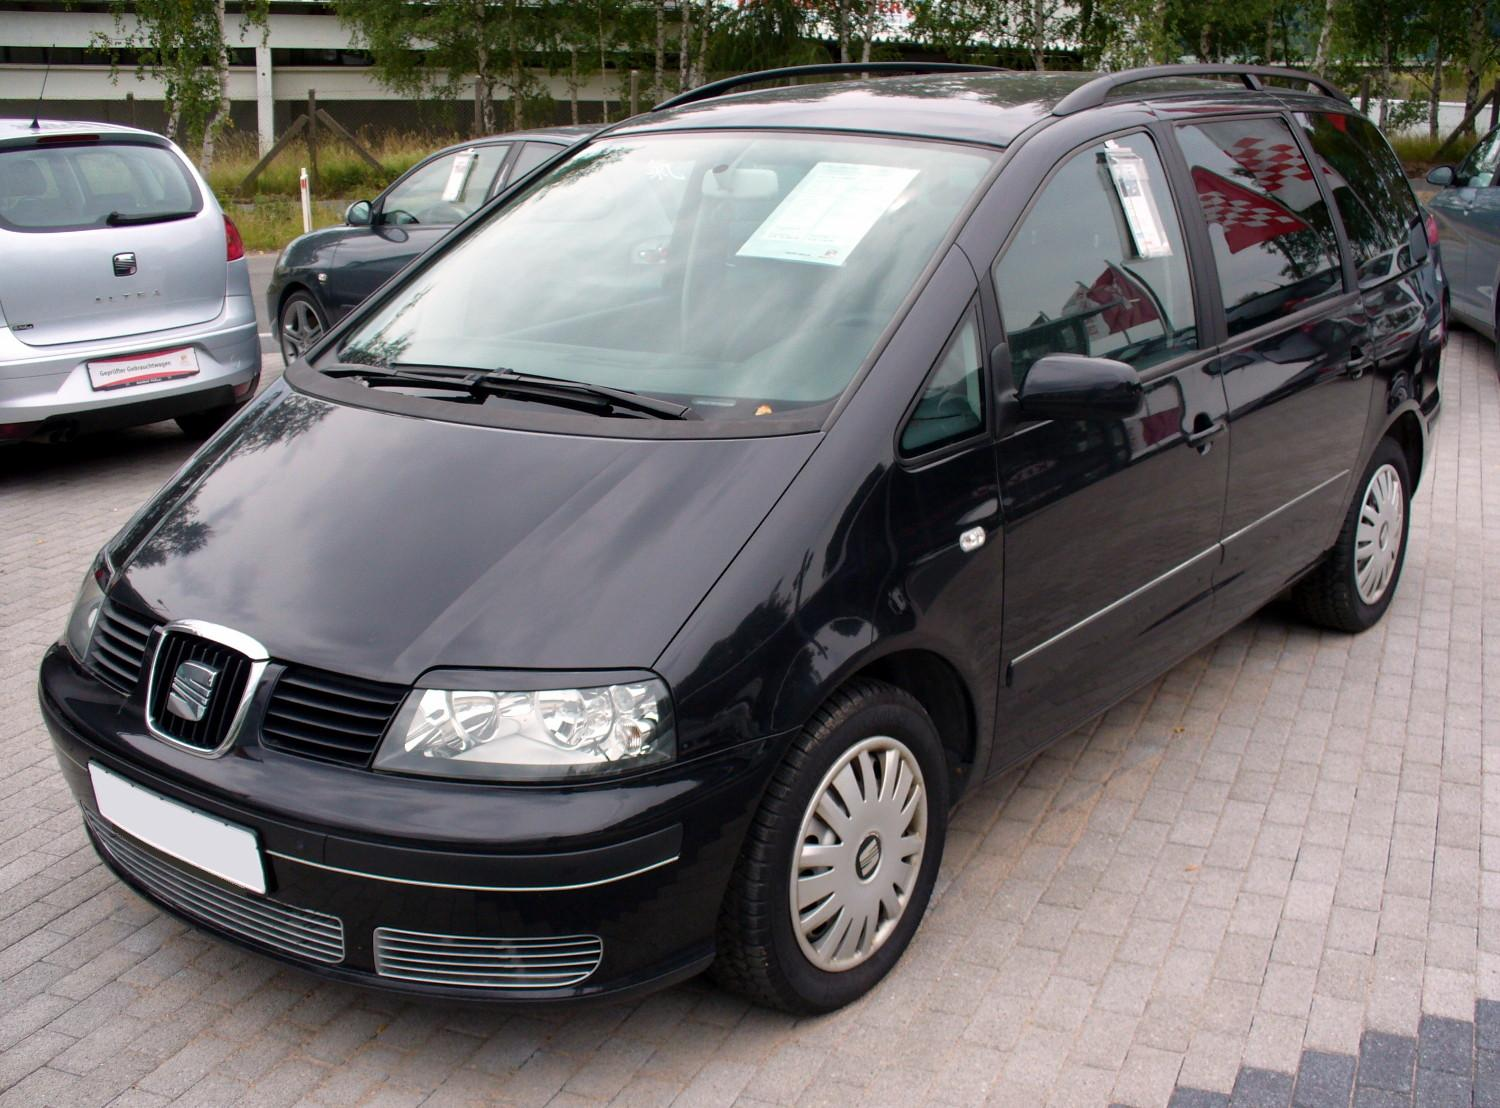 2008 seat alhambra partsopen. Black Bedroom Furniture Sets. Home Design Ideas